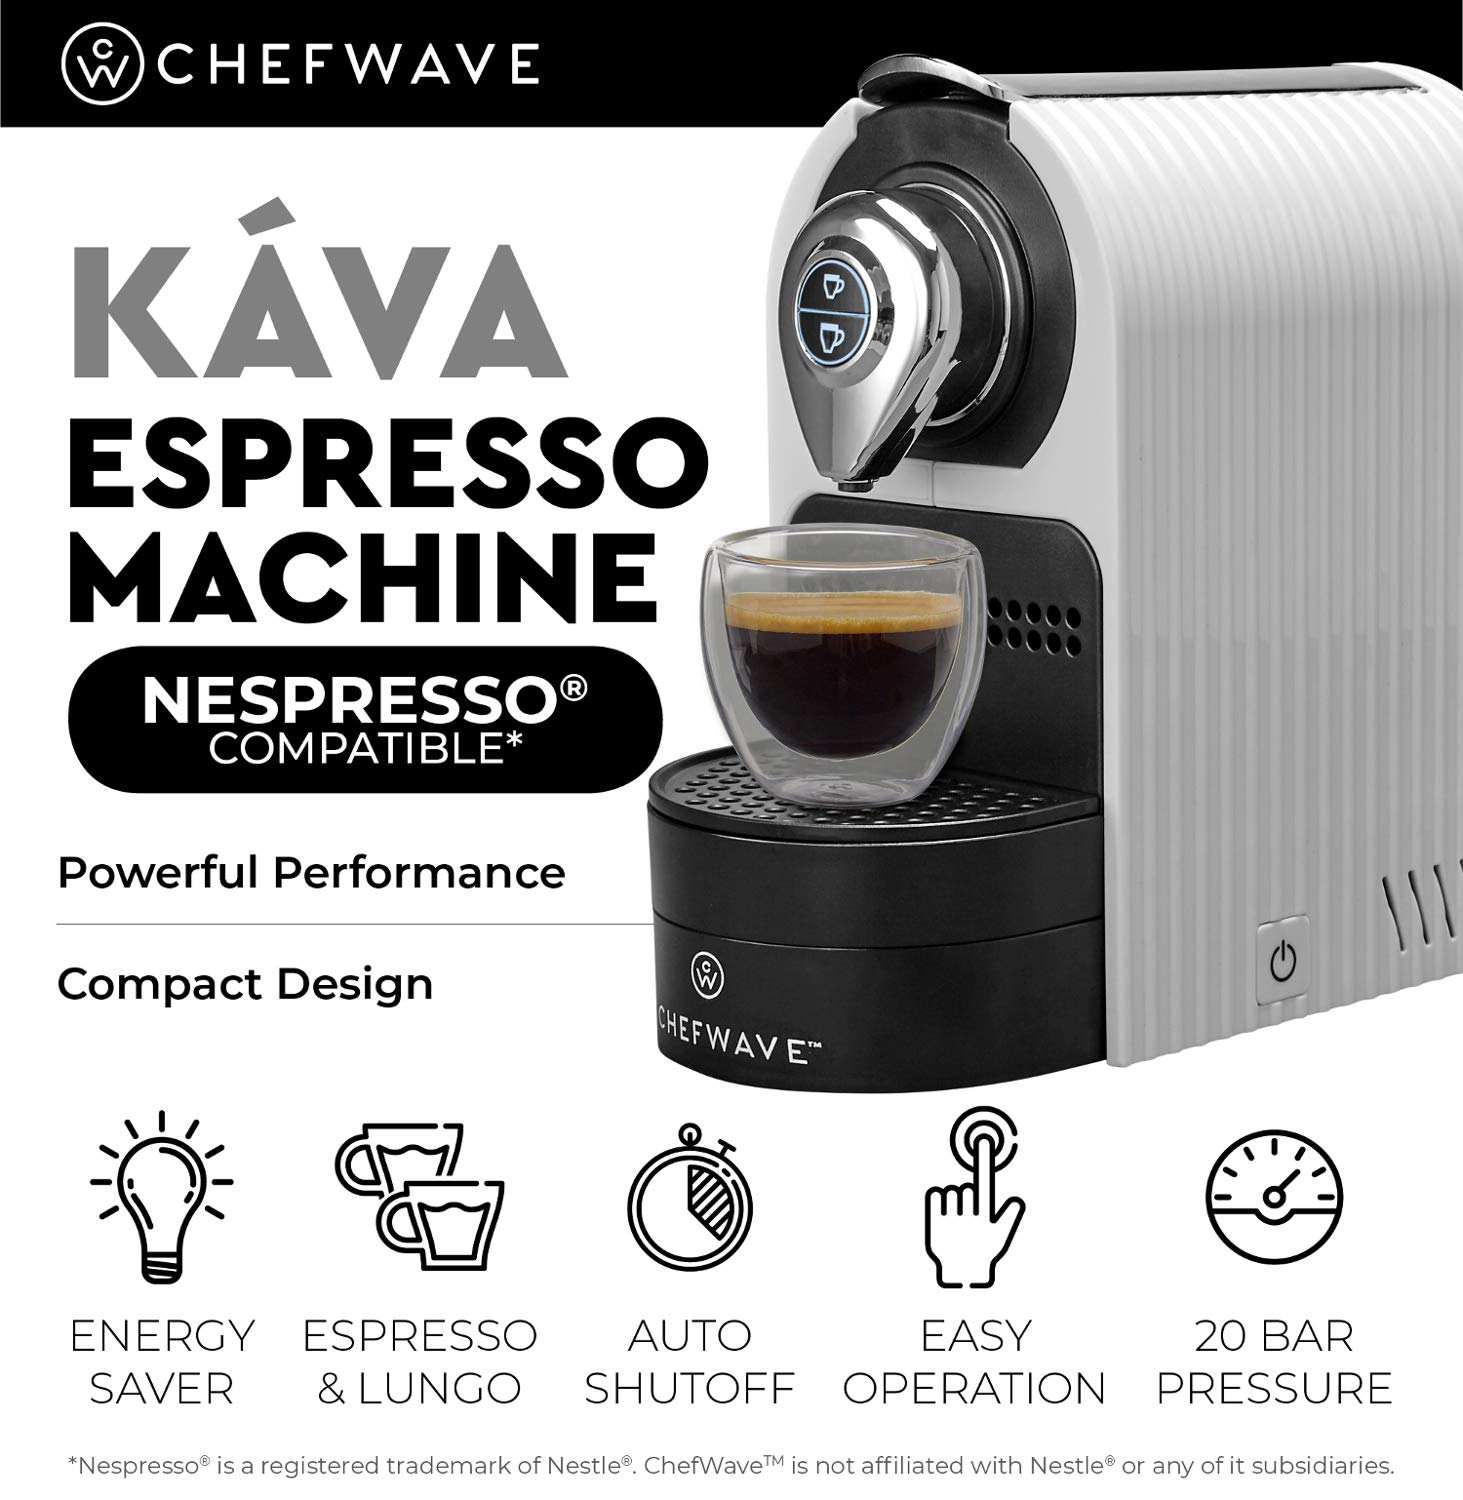 ChefWave Mini Espresso Machine - Nespresso Capsules Compatible - Programmable One-Touch 27 Oz. Water Tank, Premium Italian 20 Bar High Pressure Pump - 40 Pod Holder, 2 Double-Wall Glass Cups - White by ChefWave (Image #3)